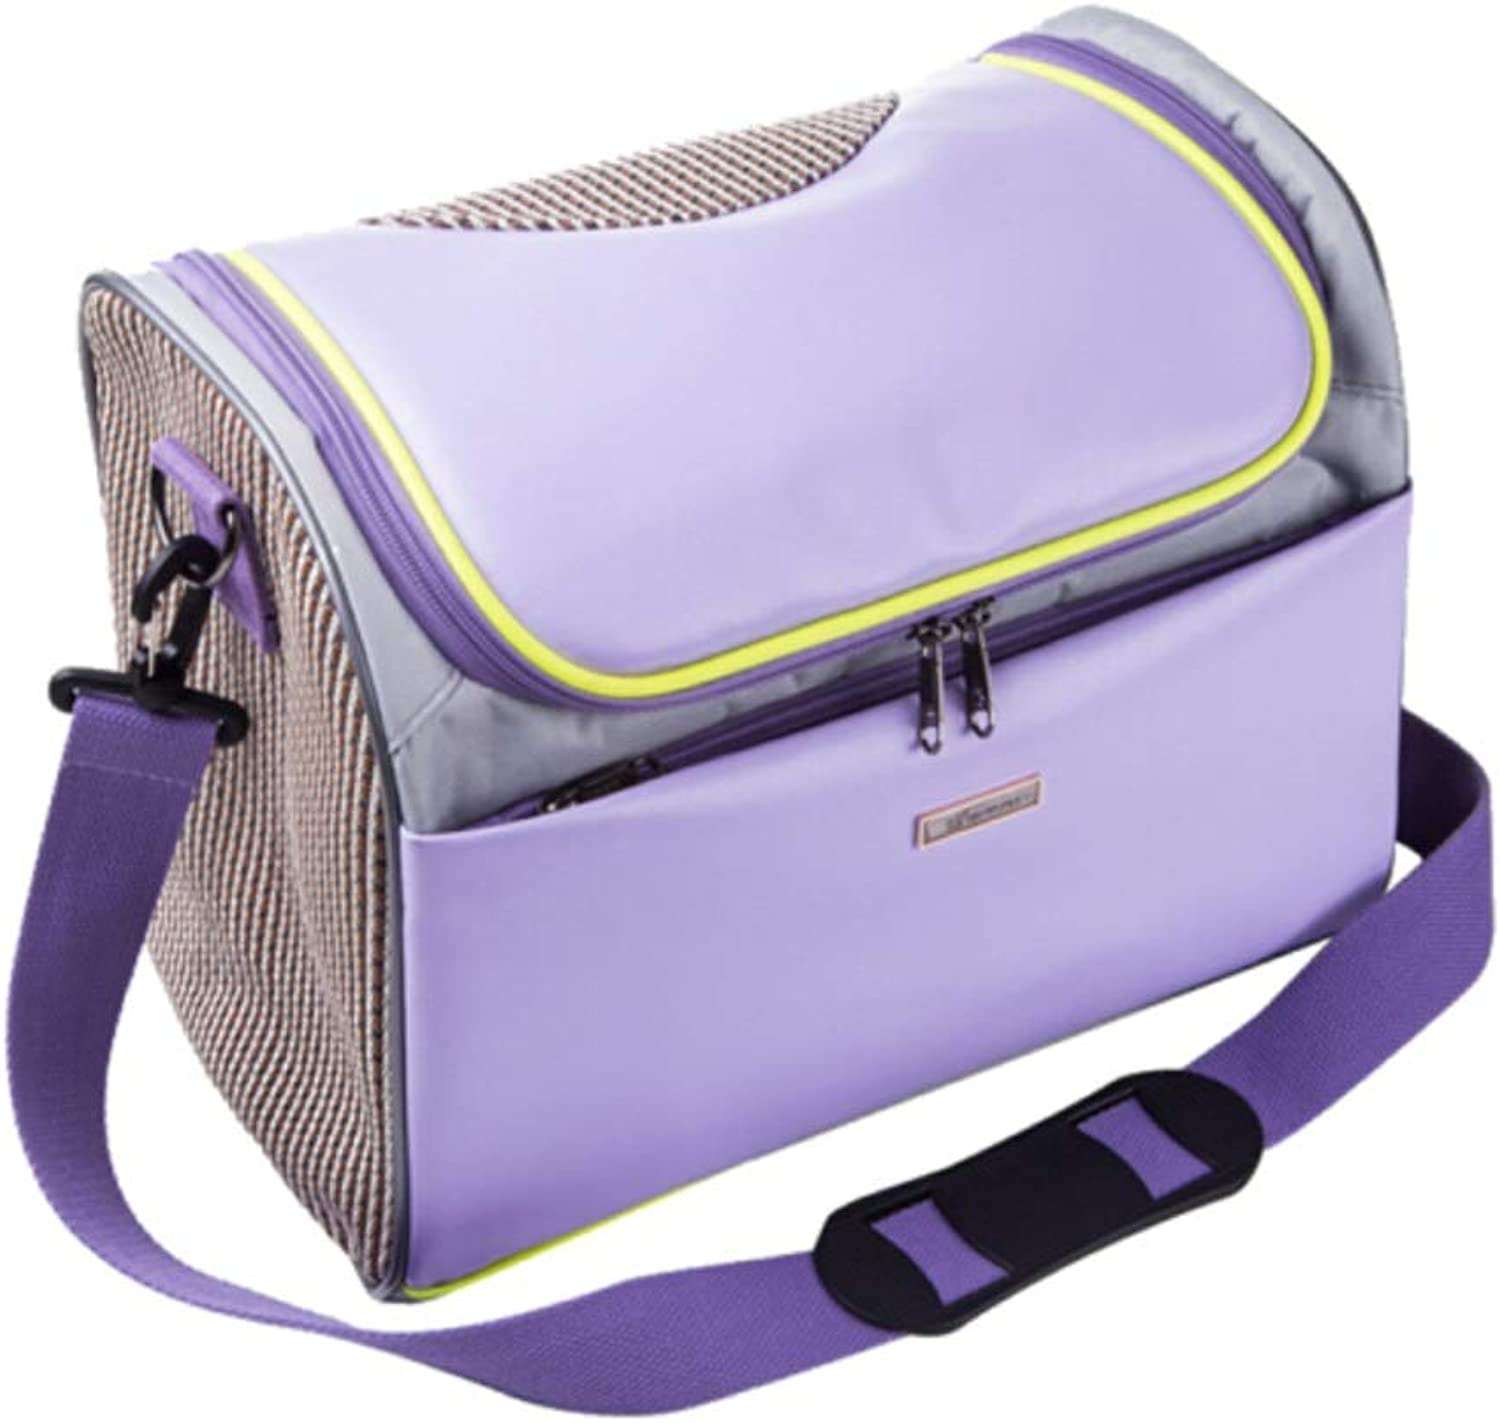 2019 Summer Style Pet Travel Carrier Soft Sided Portable Bag for Medium Puppy and Cats,Portable with Adjustable Backpack Belt Suitable for Outdoor Travel Walking Hiking (color   Purple)